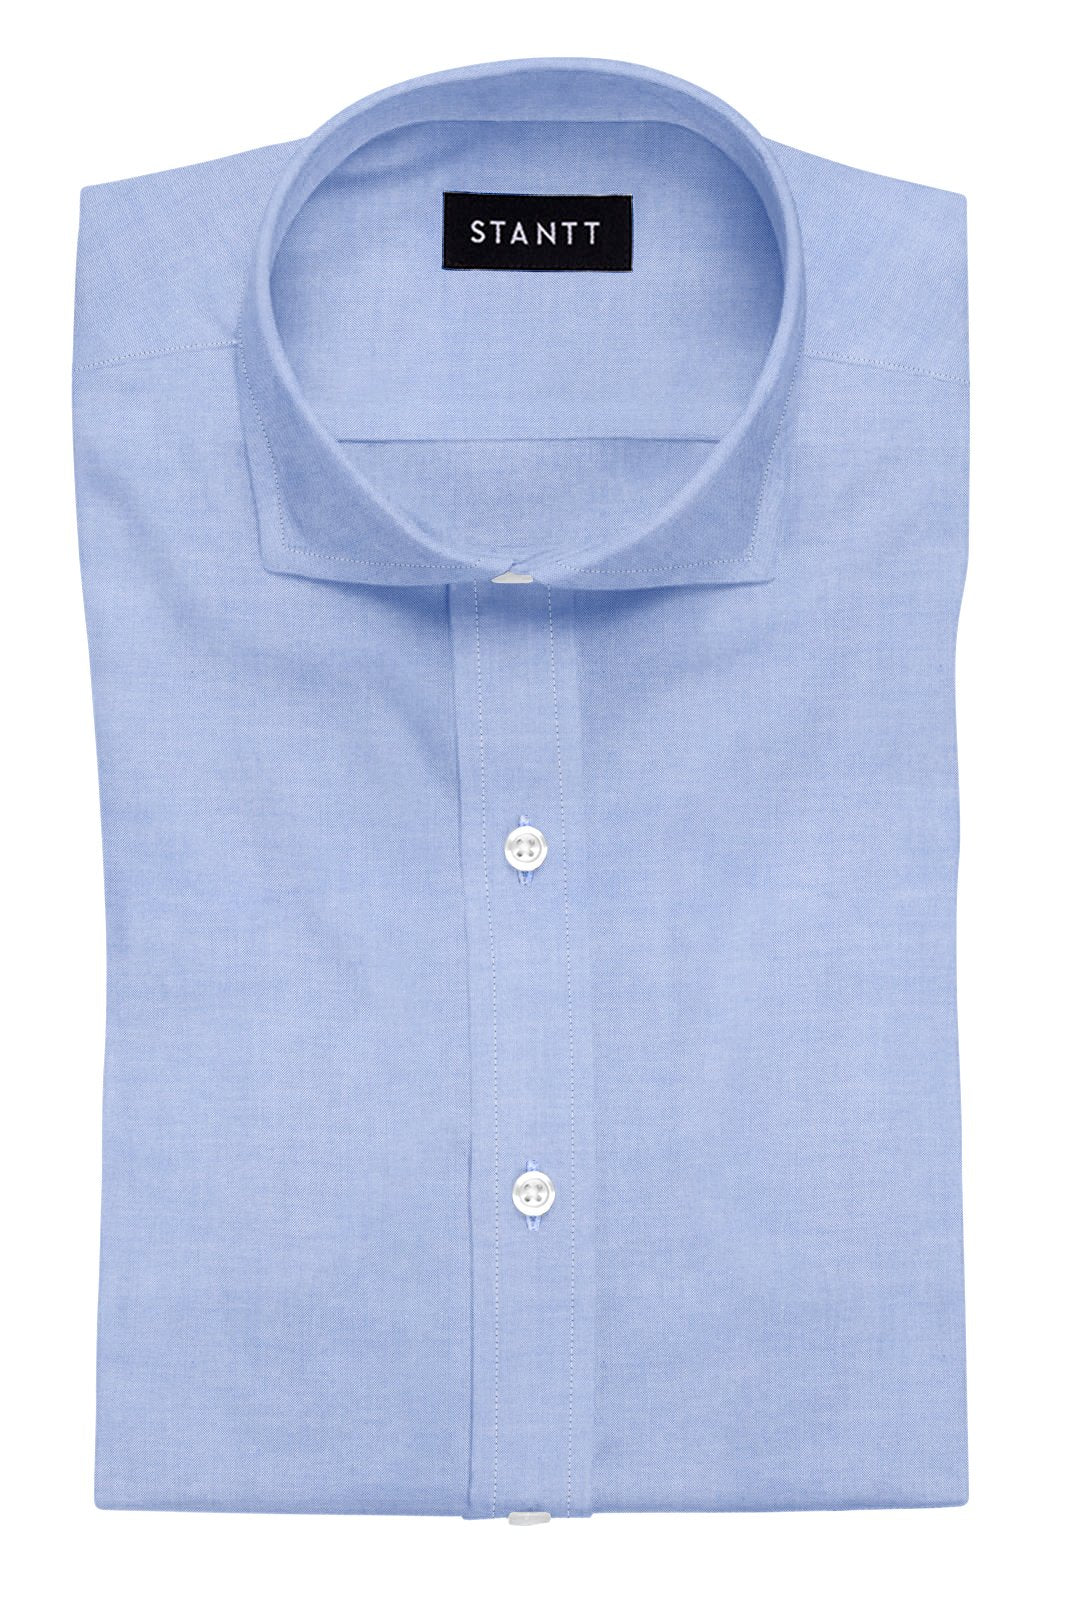 Blue Pinpoint Oxford: Cutaway Collar, French Cuff